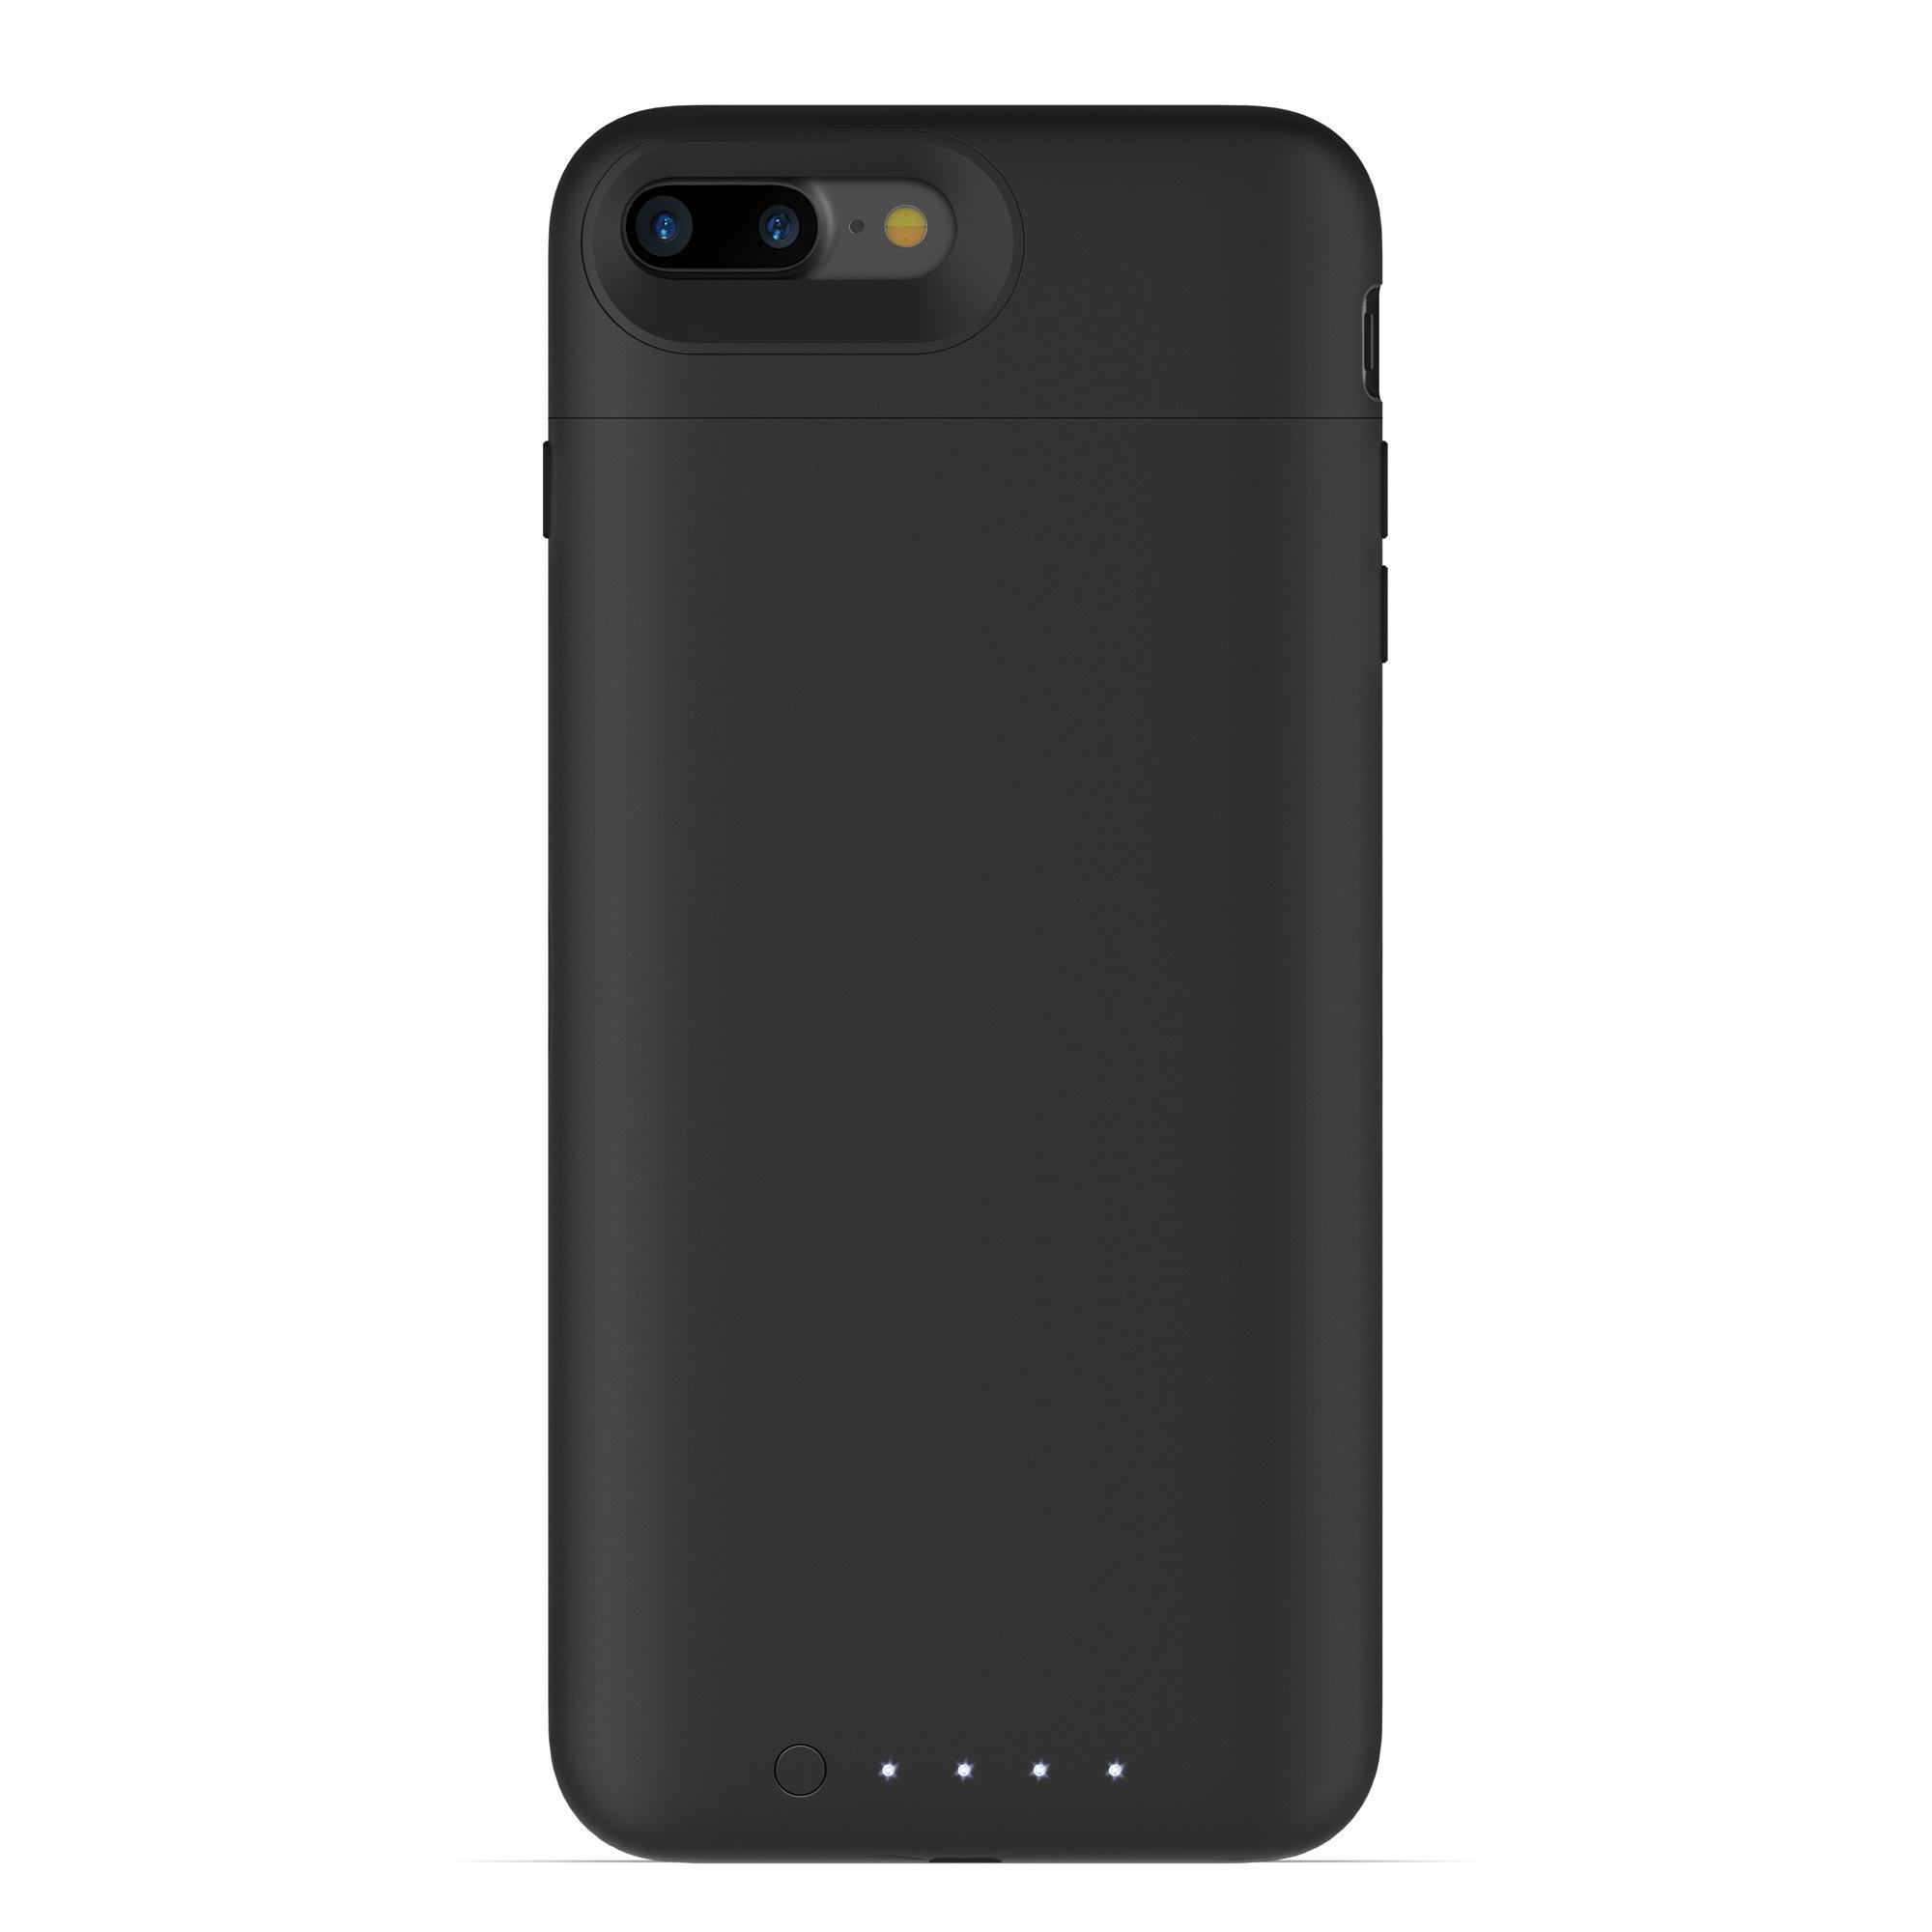 mophie juice pack wireless - Charge Force Wireless Power - Wireless Charging Protective Battery Pack Case for iPhone 8 – Black by mophie (Image #2)